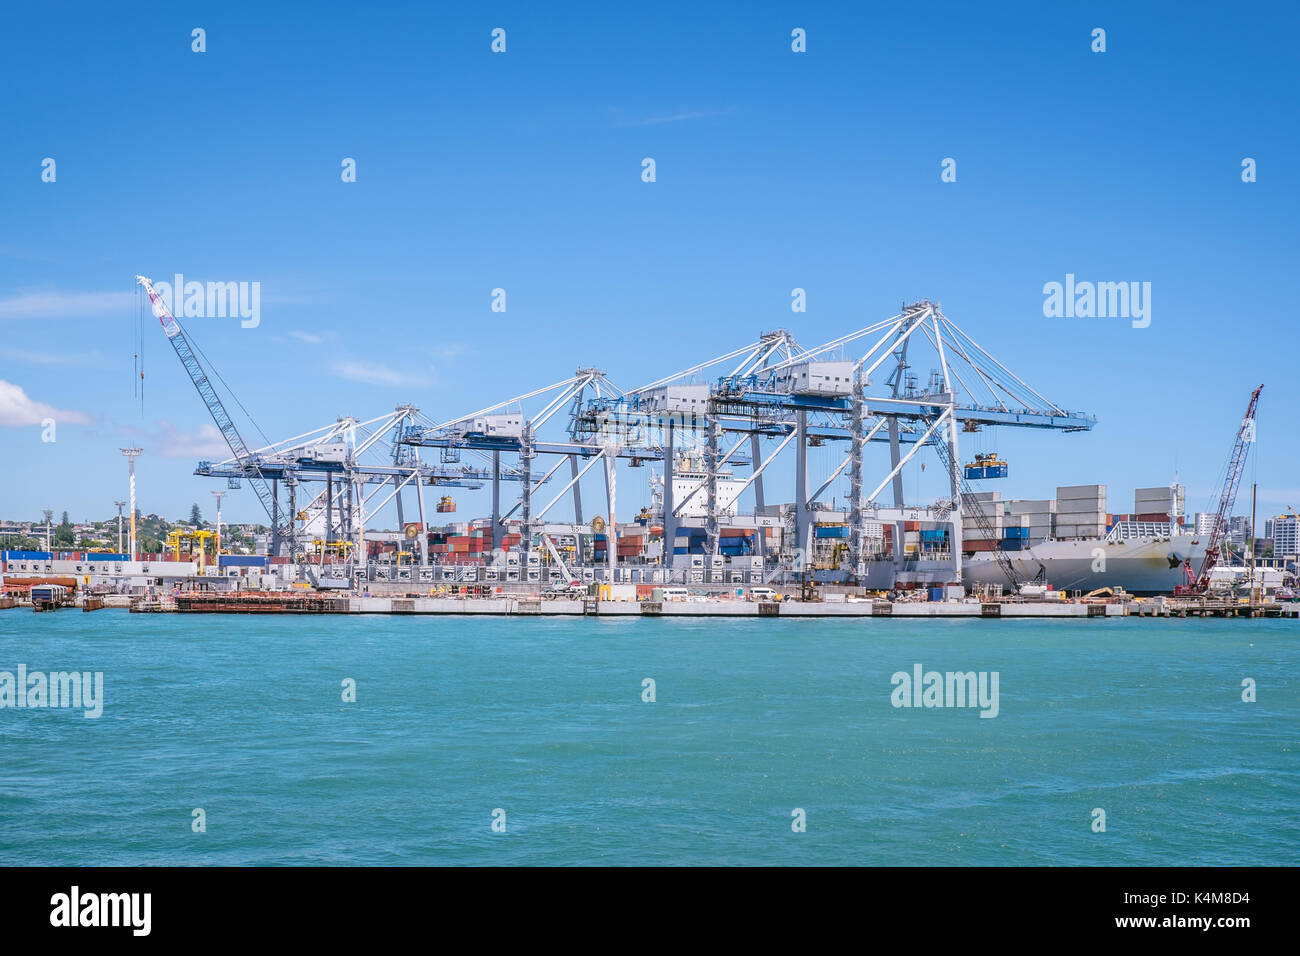 Auckland port with shipping containers, cranes and ship providing transportation for imports and exports in New Zealand, NZ - Stock Image